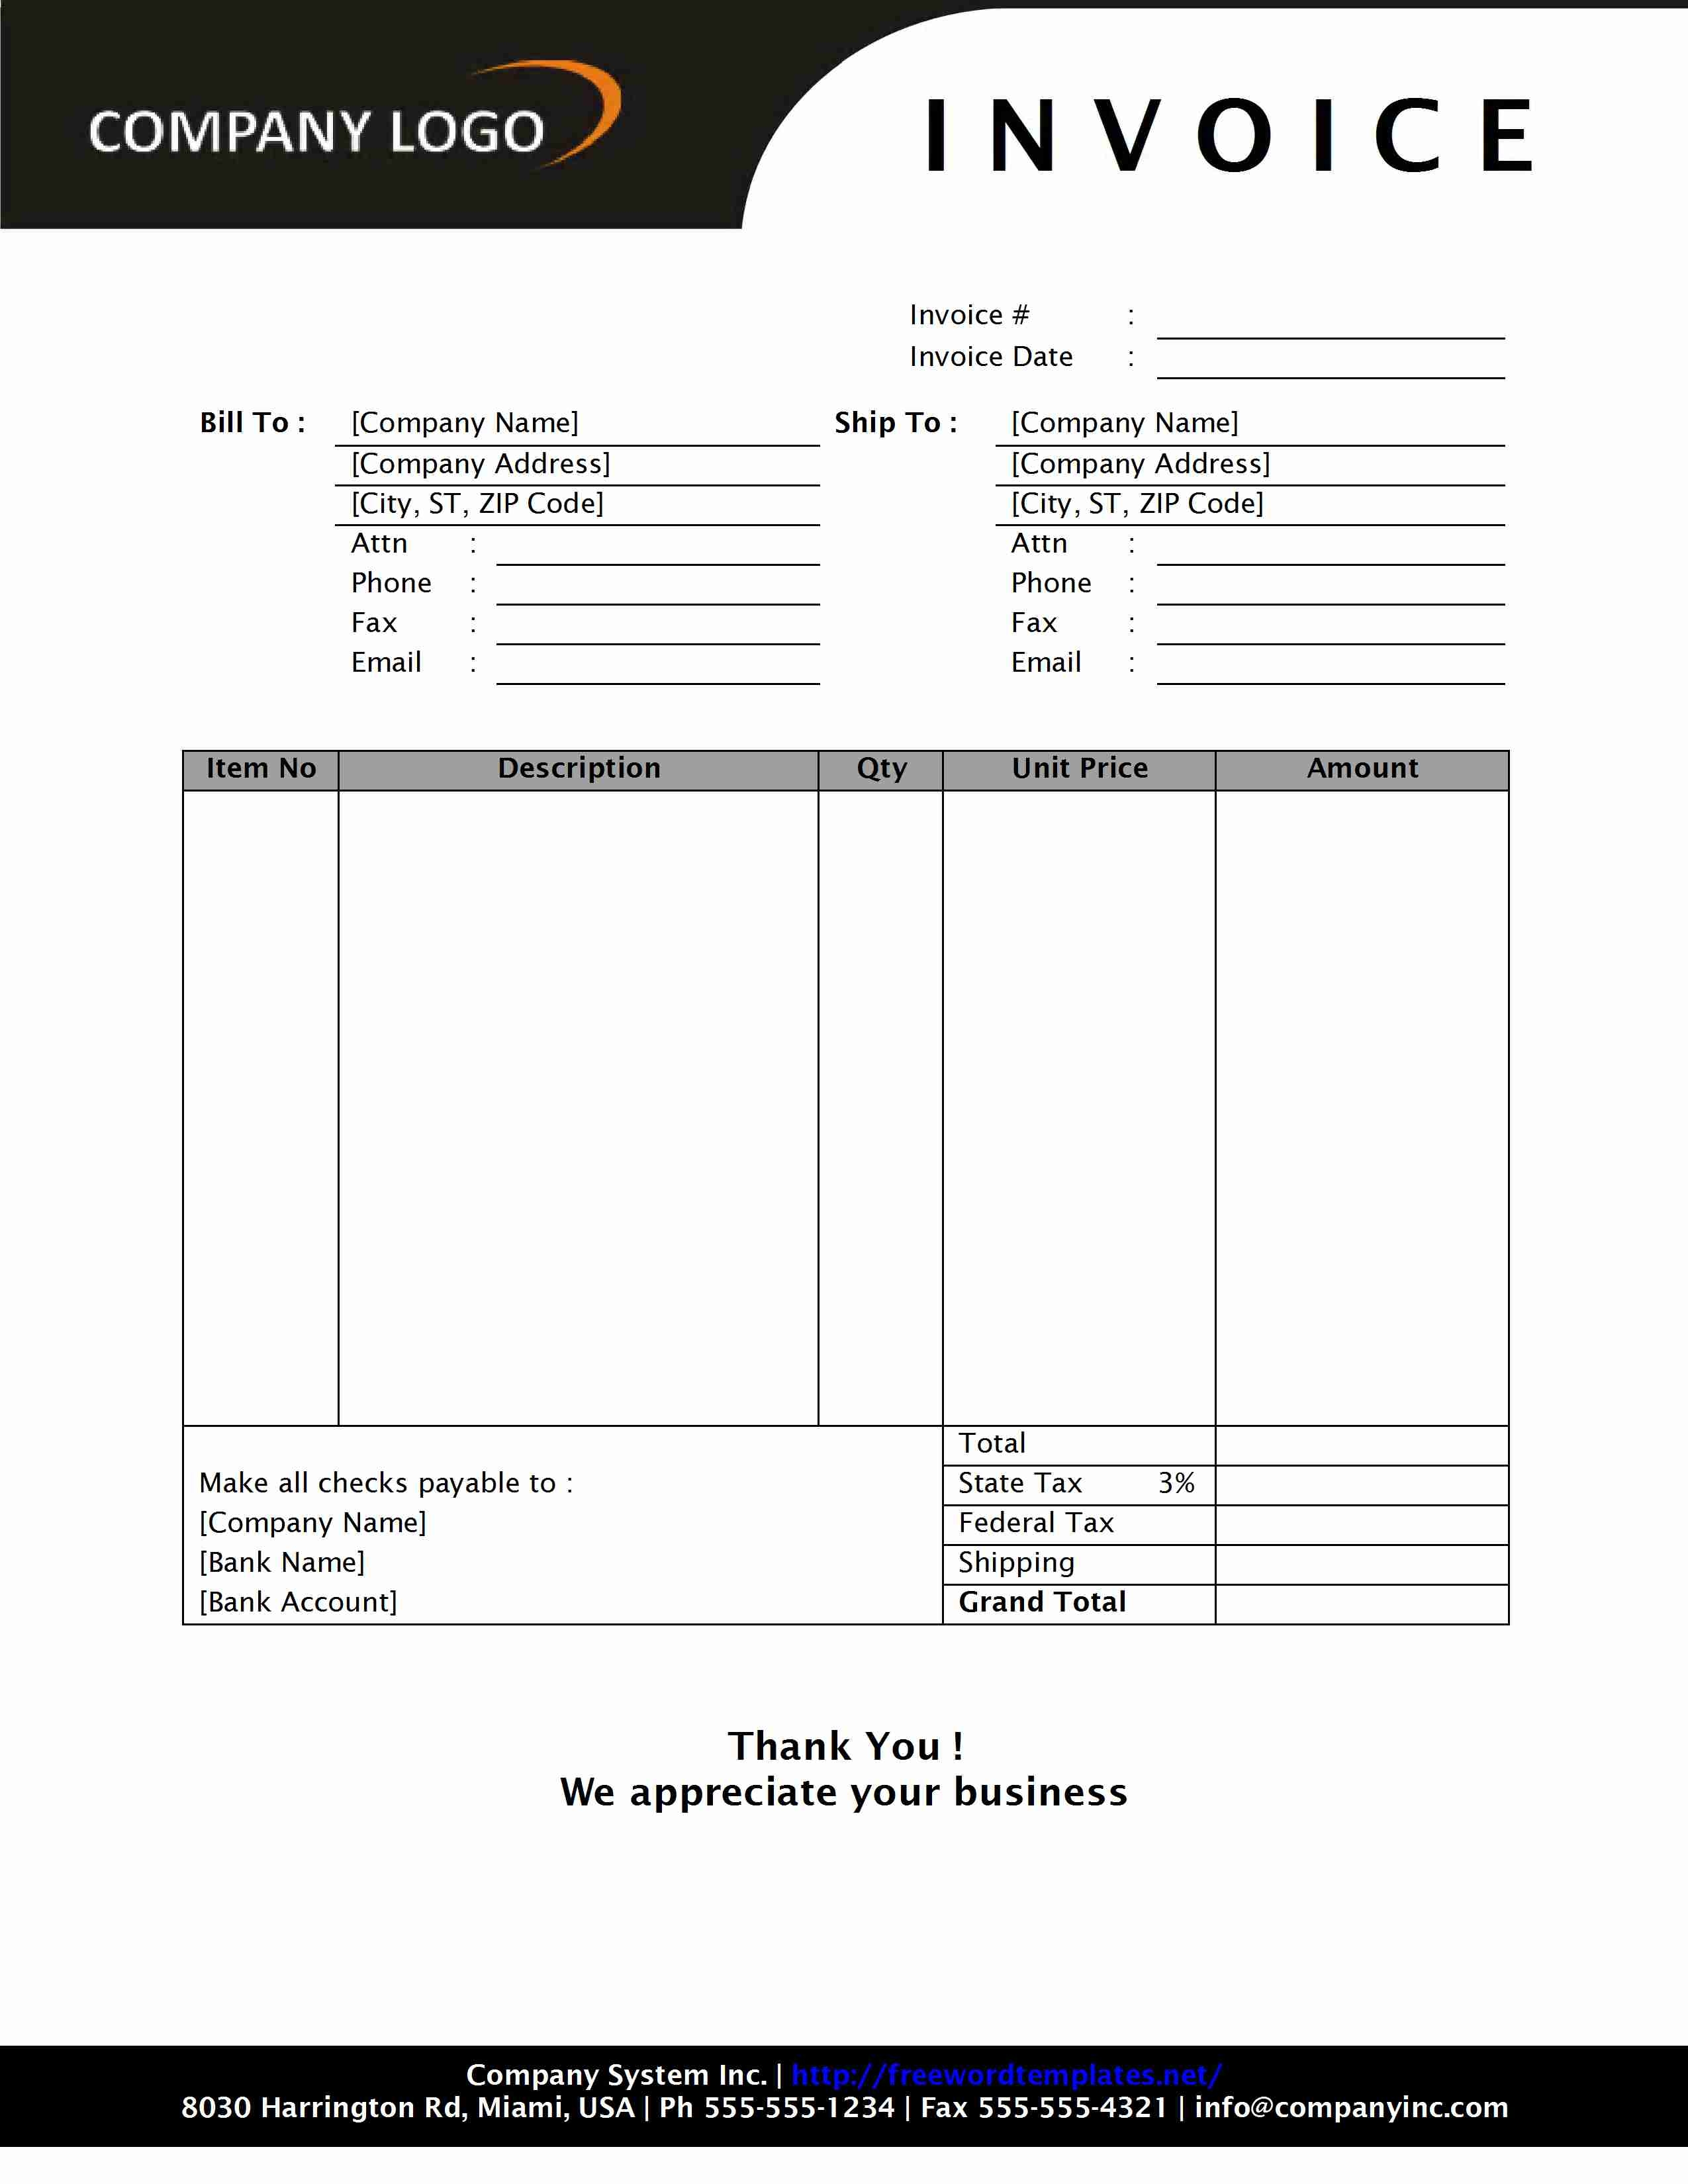 Cash Invoice Format In Word